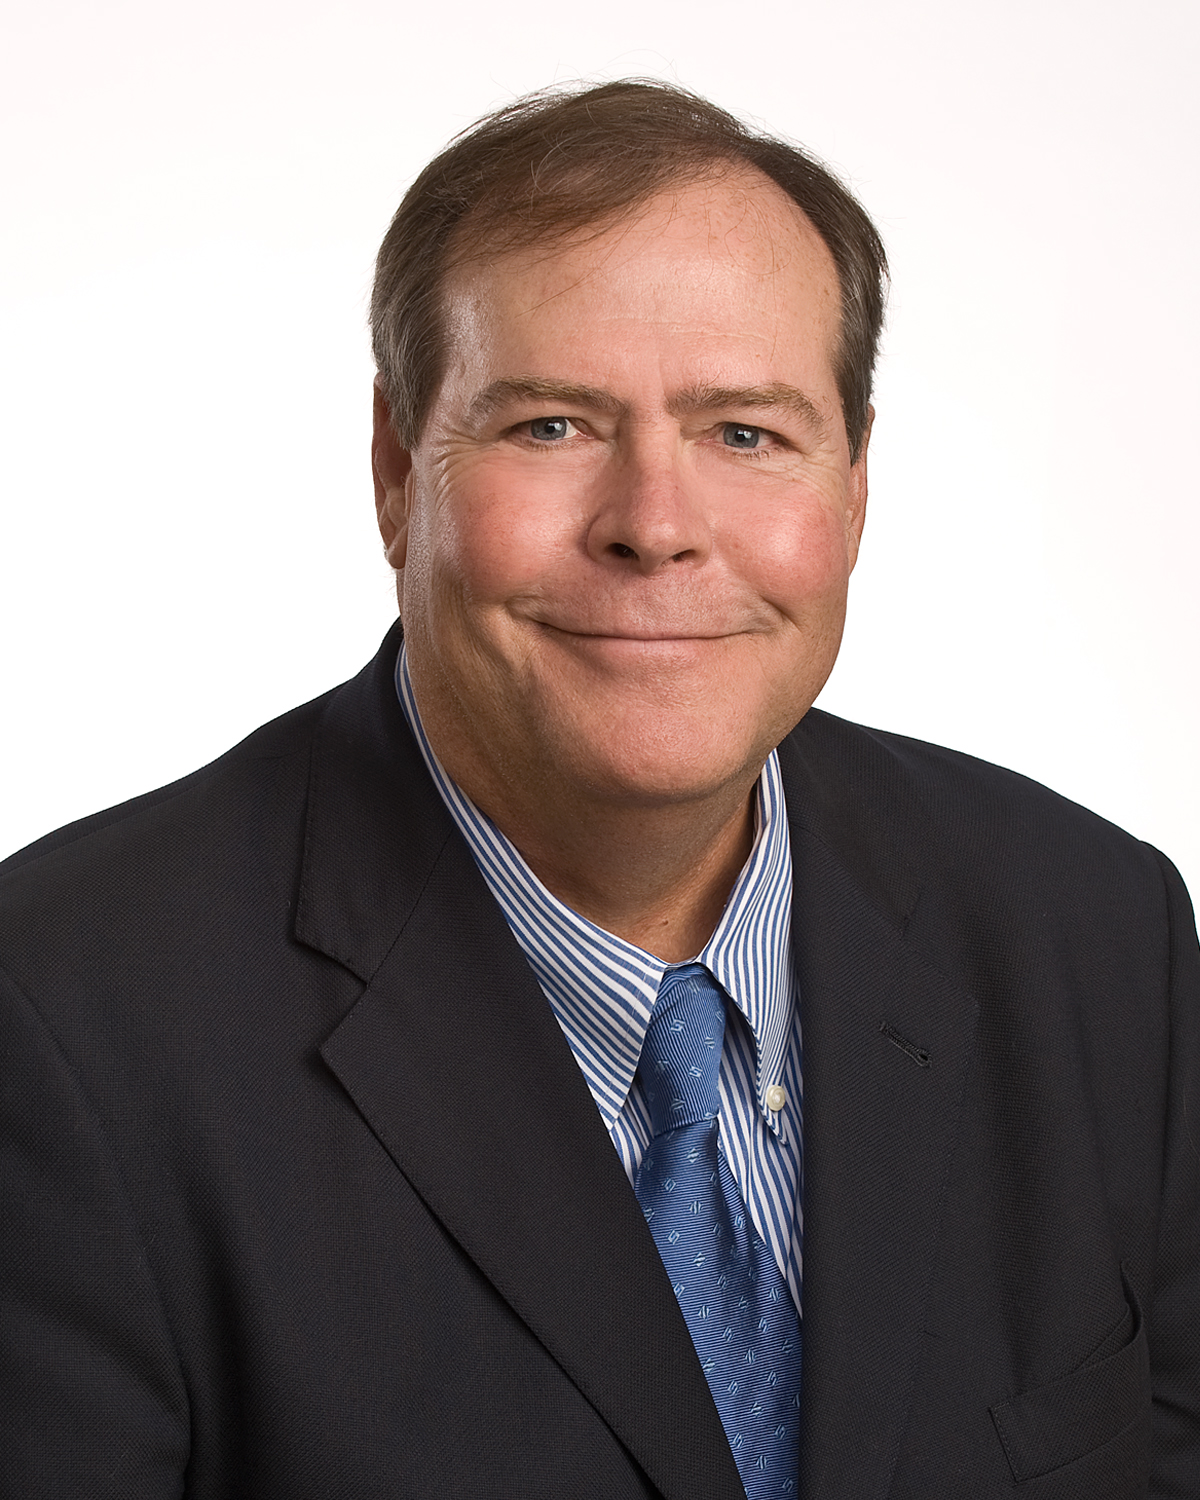 Steve Althoff Elected to ICSC's Southern Division Volunteer Leadership Committee